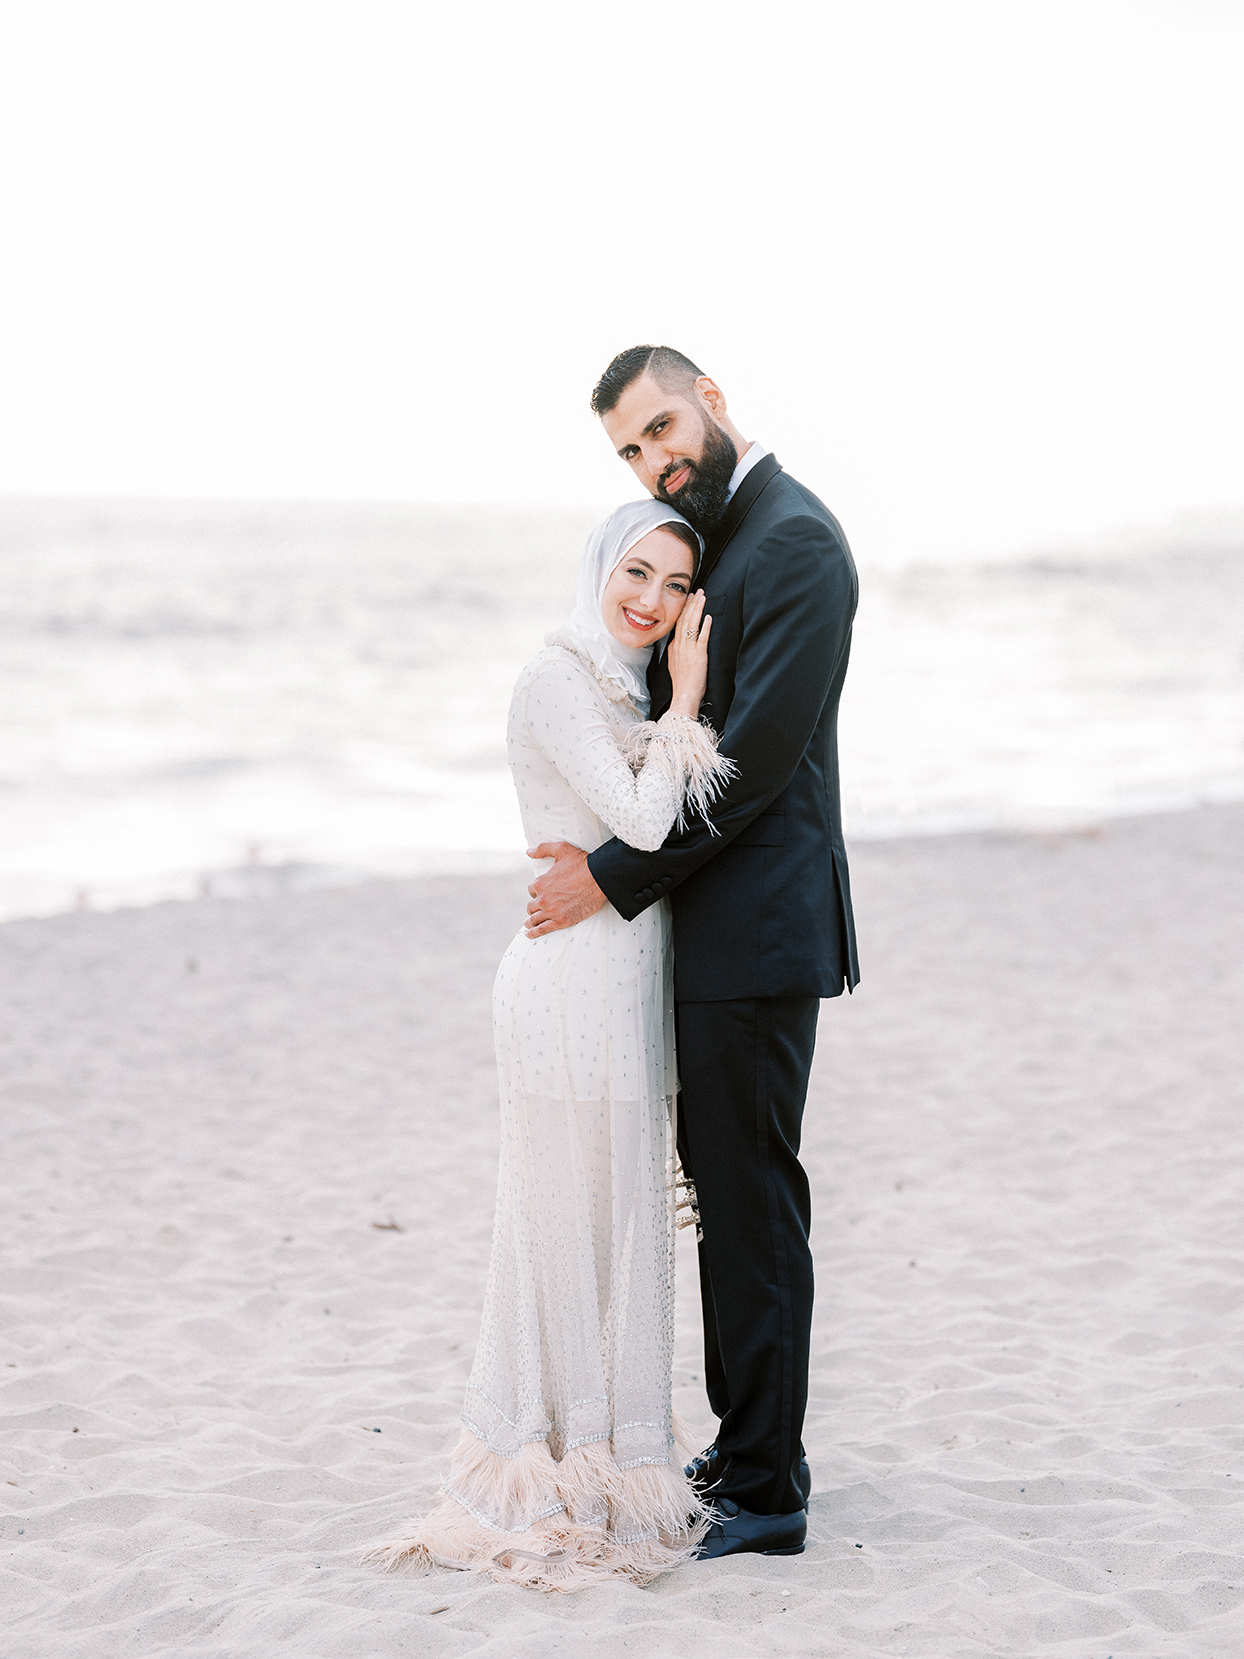 bride and groom embracing smiling on sandy beach